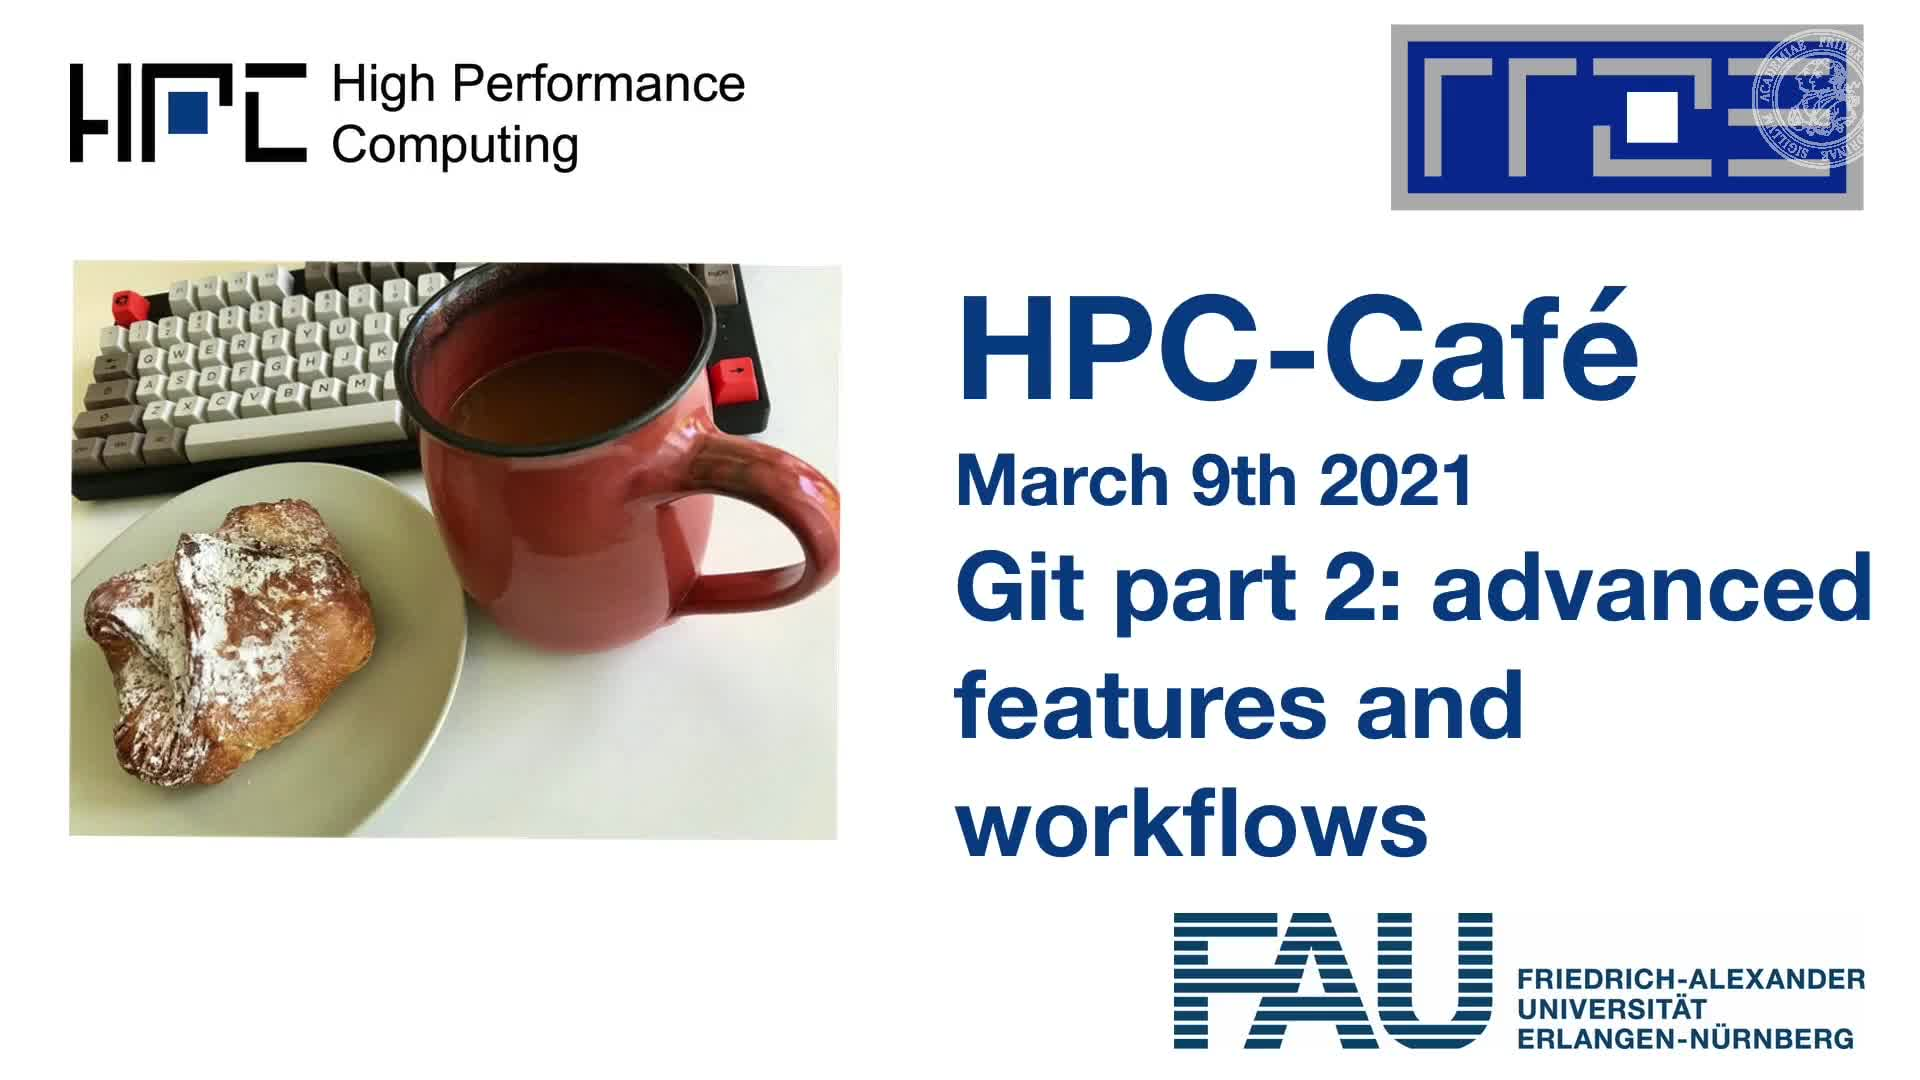 HPC Cafe: Git part 2 - advanced features and workflows preview image